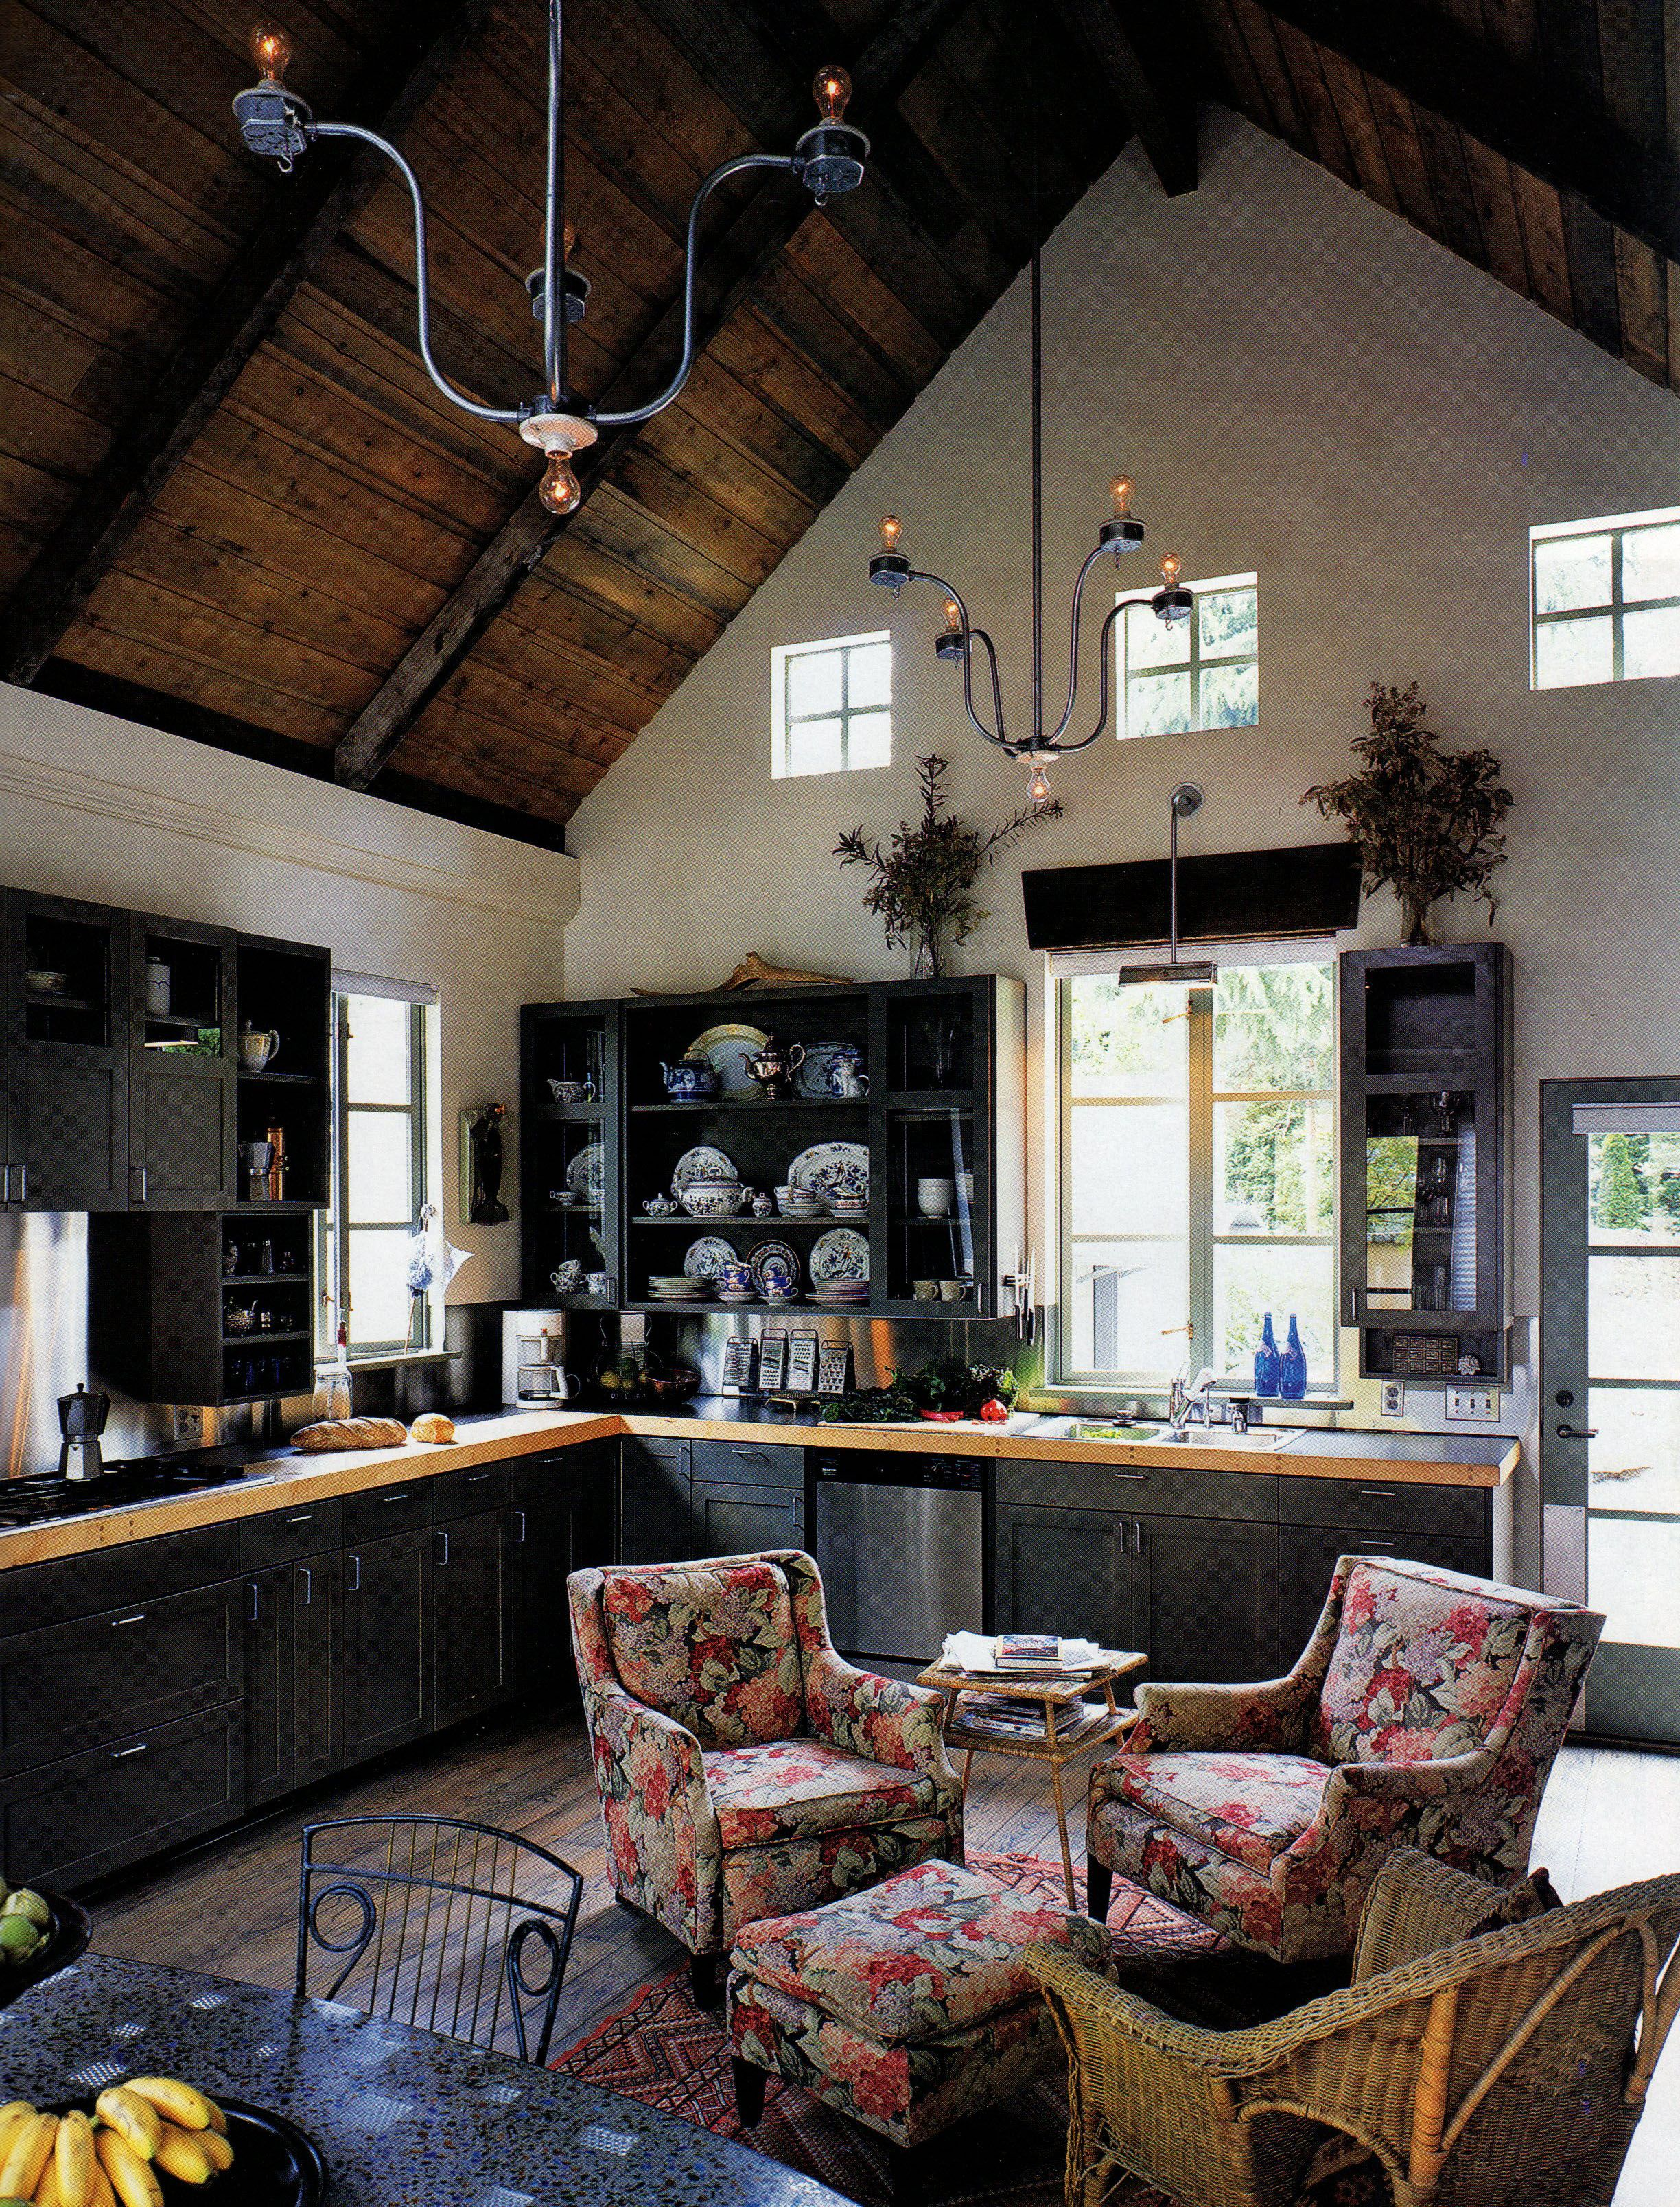 Kitchen Sitting Rooms Designs: Sitting Room In The Kitchen, Cozy!